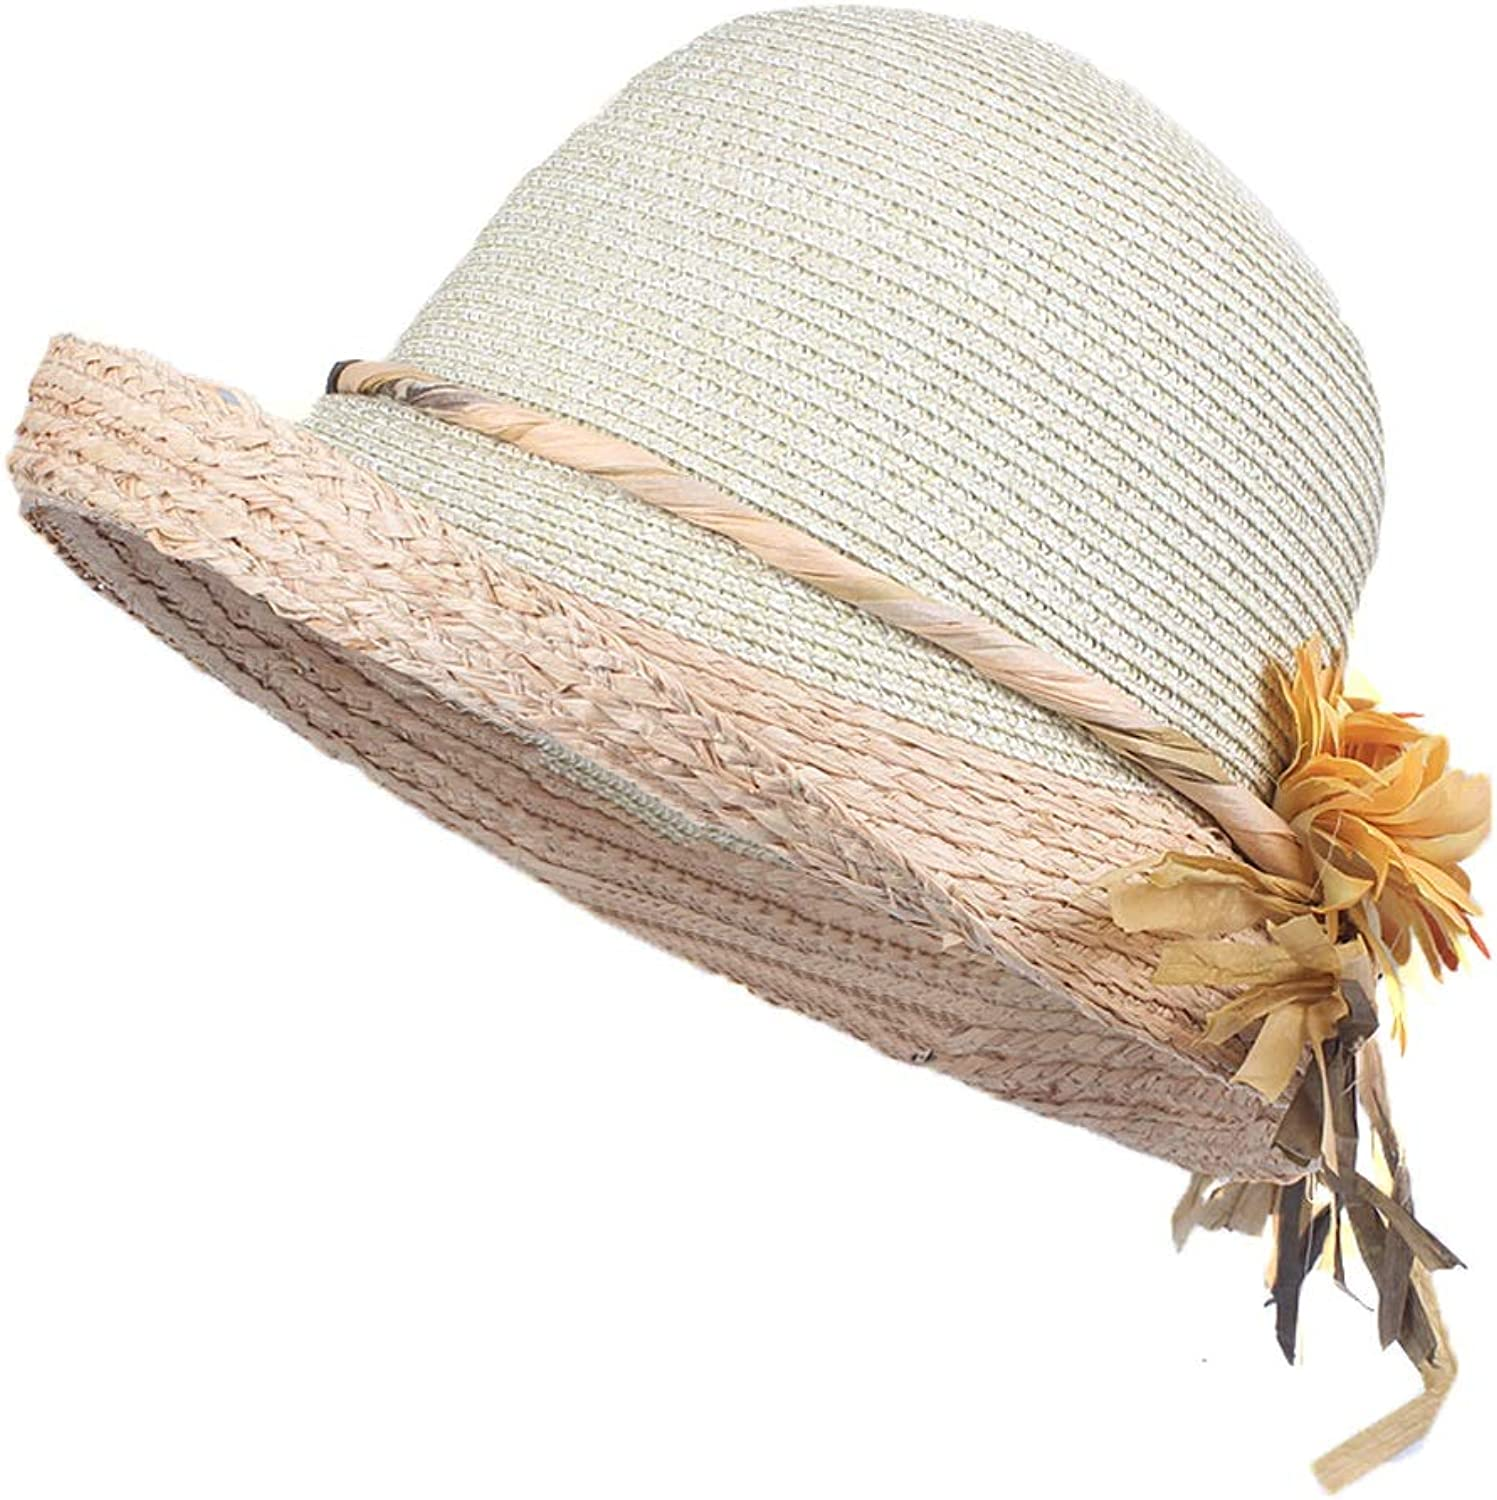 Hipster New Style Sun Hat Lafite Quality Summer Hat Lady Flower Small Fresh Lady Sun Hat Hat MISSMARCH